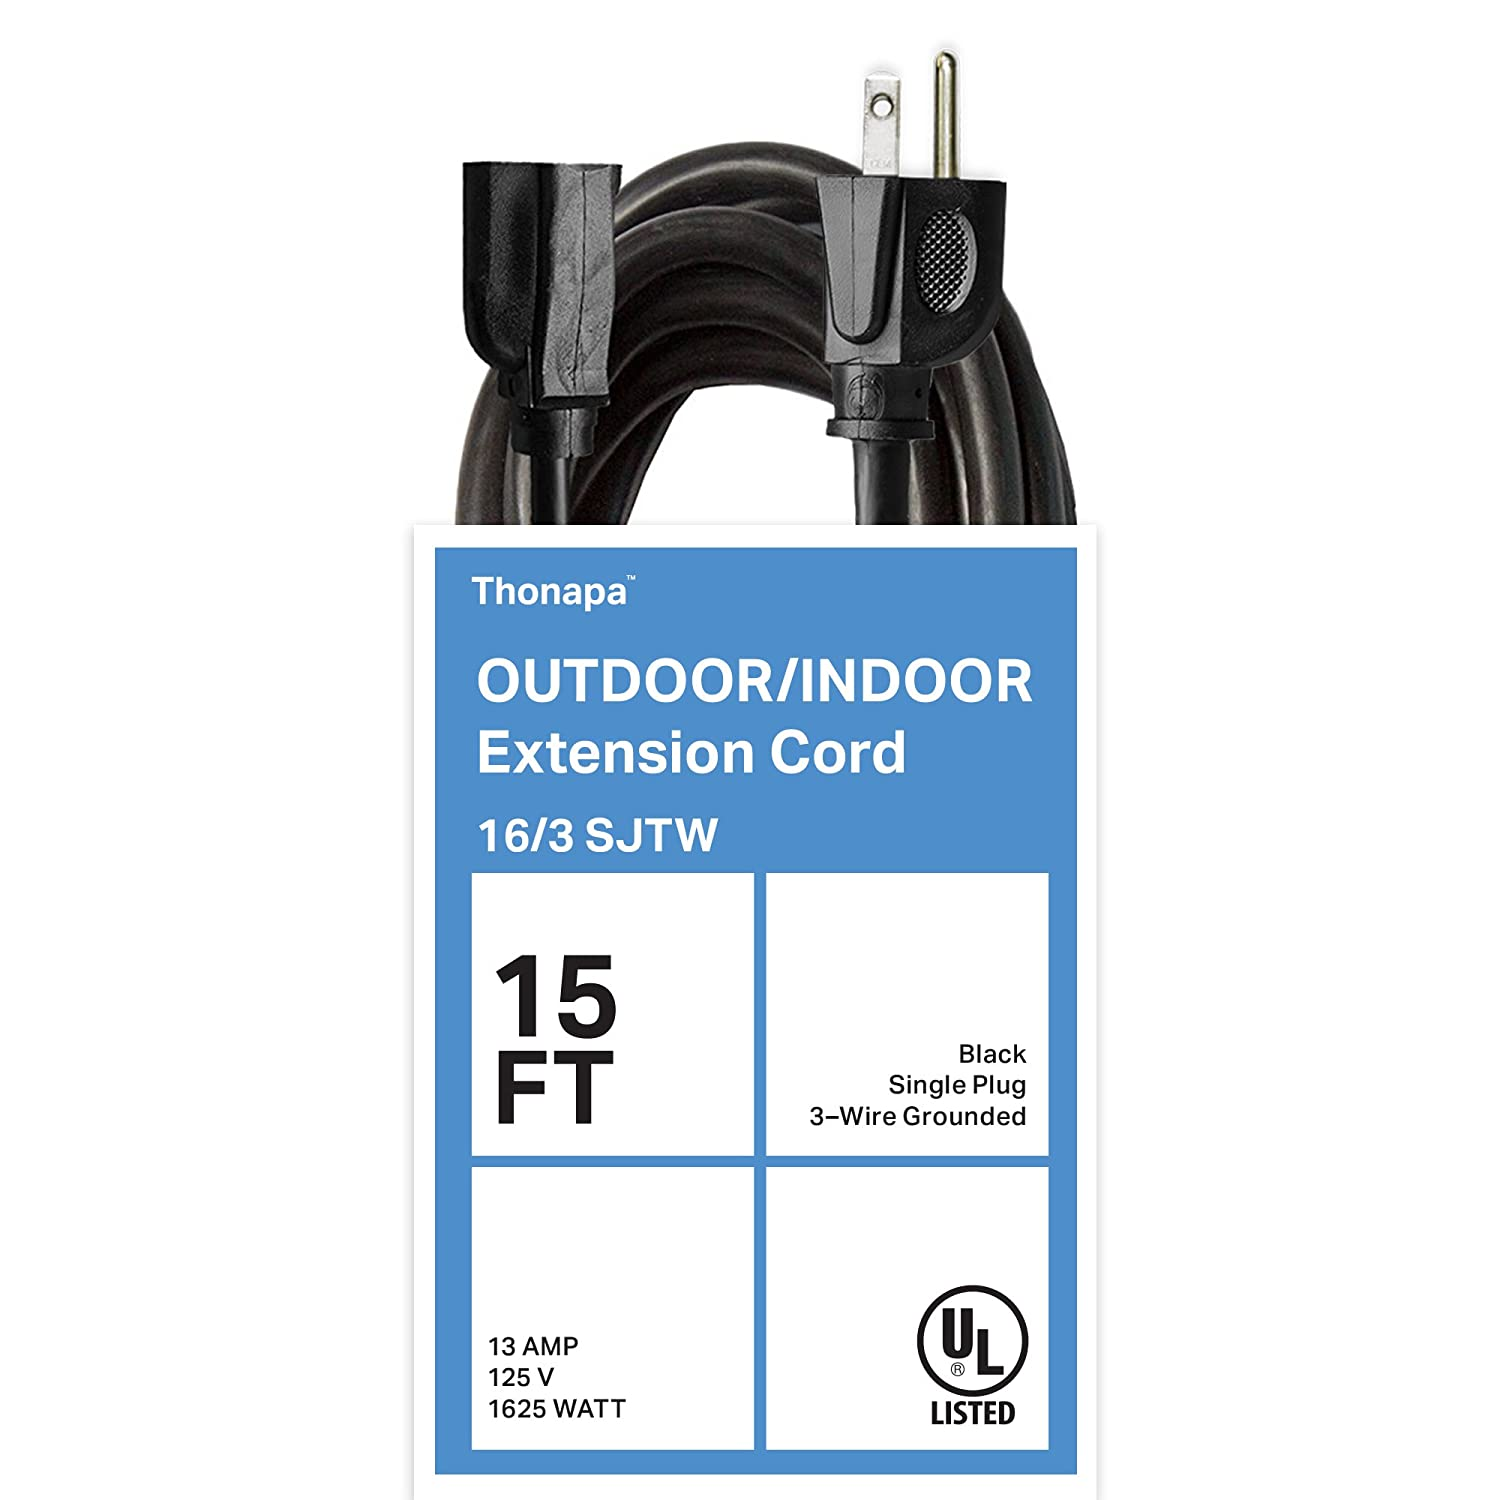 Thonapa 10 Ft Black Extension Cord - 16/3 Electrical Cable with 3 Prong Grounded Plug for Safety TH-163B10